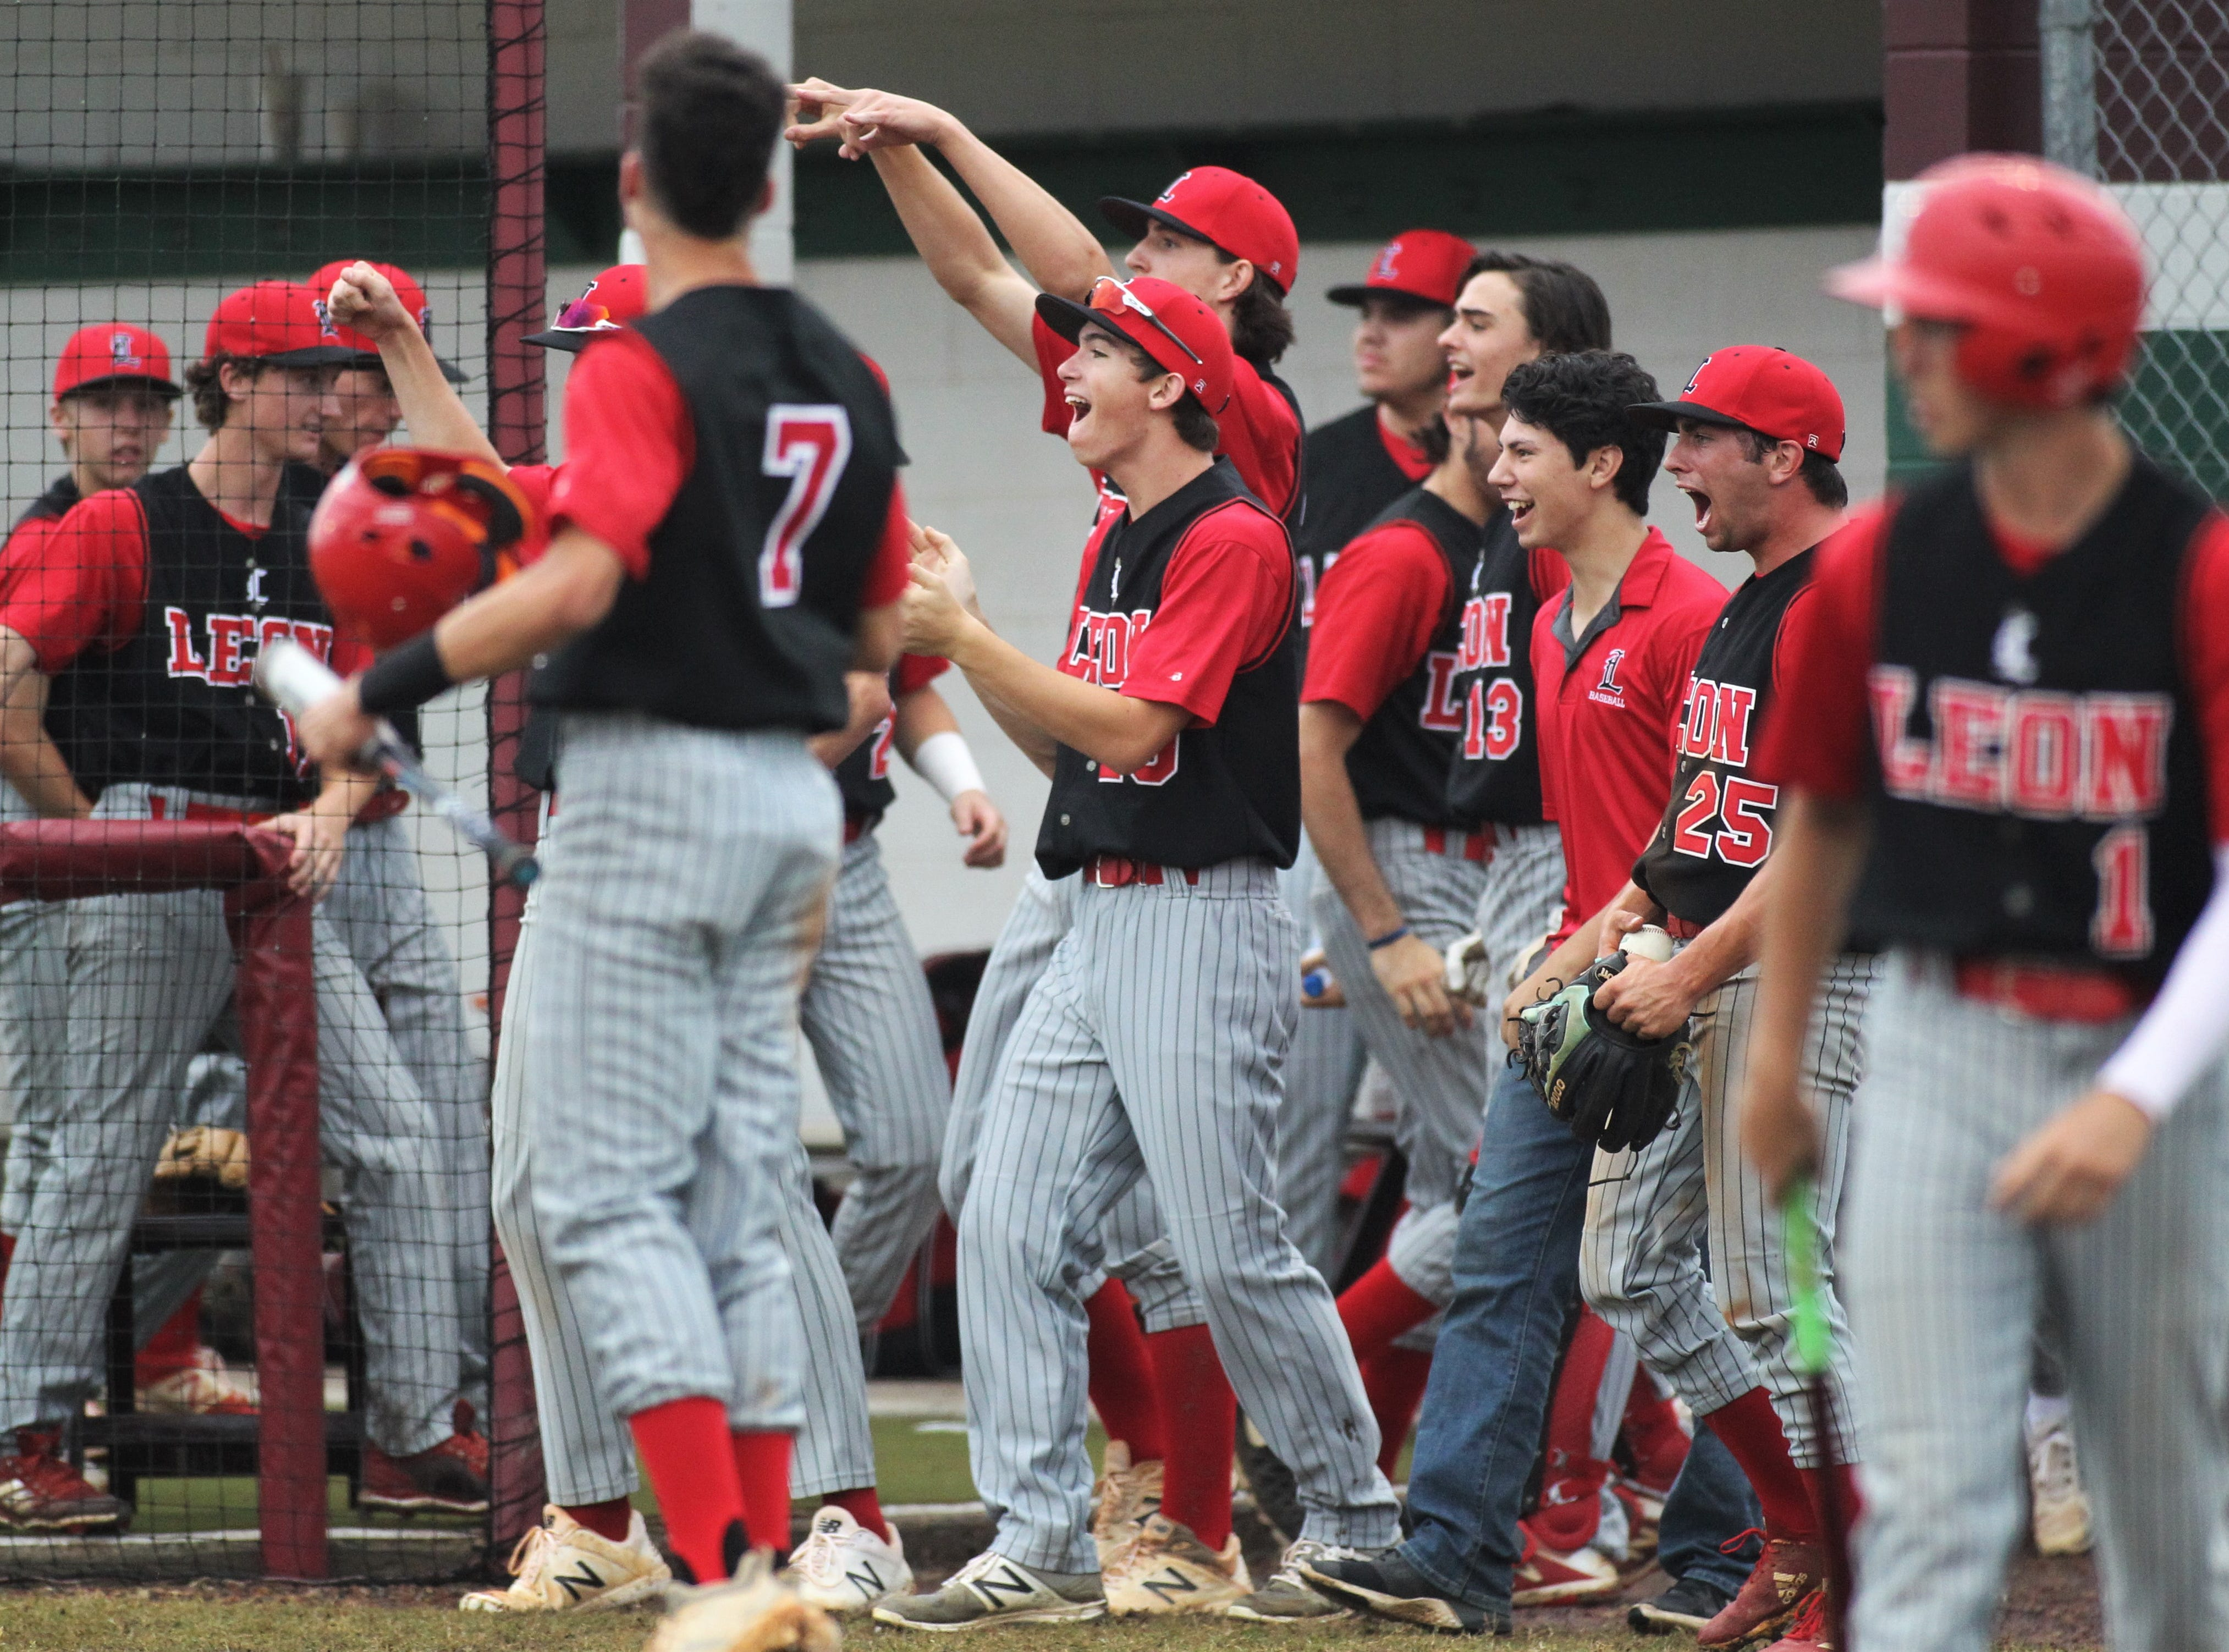 Leon's baseball team erupts after an RBI hit, but Chiles won an 11-6 home game against Leon on Friday, April 5, 2019, to force a season split. The Lions won 3-0 earlier in the week.